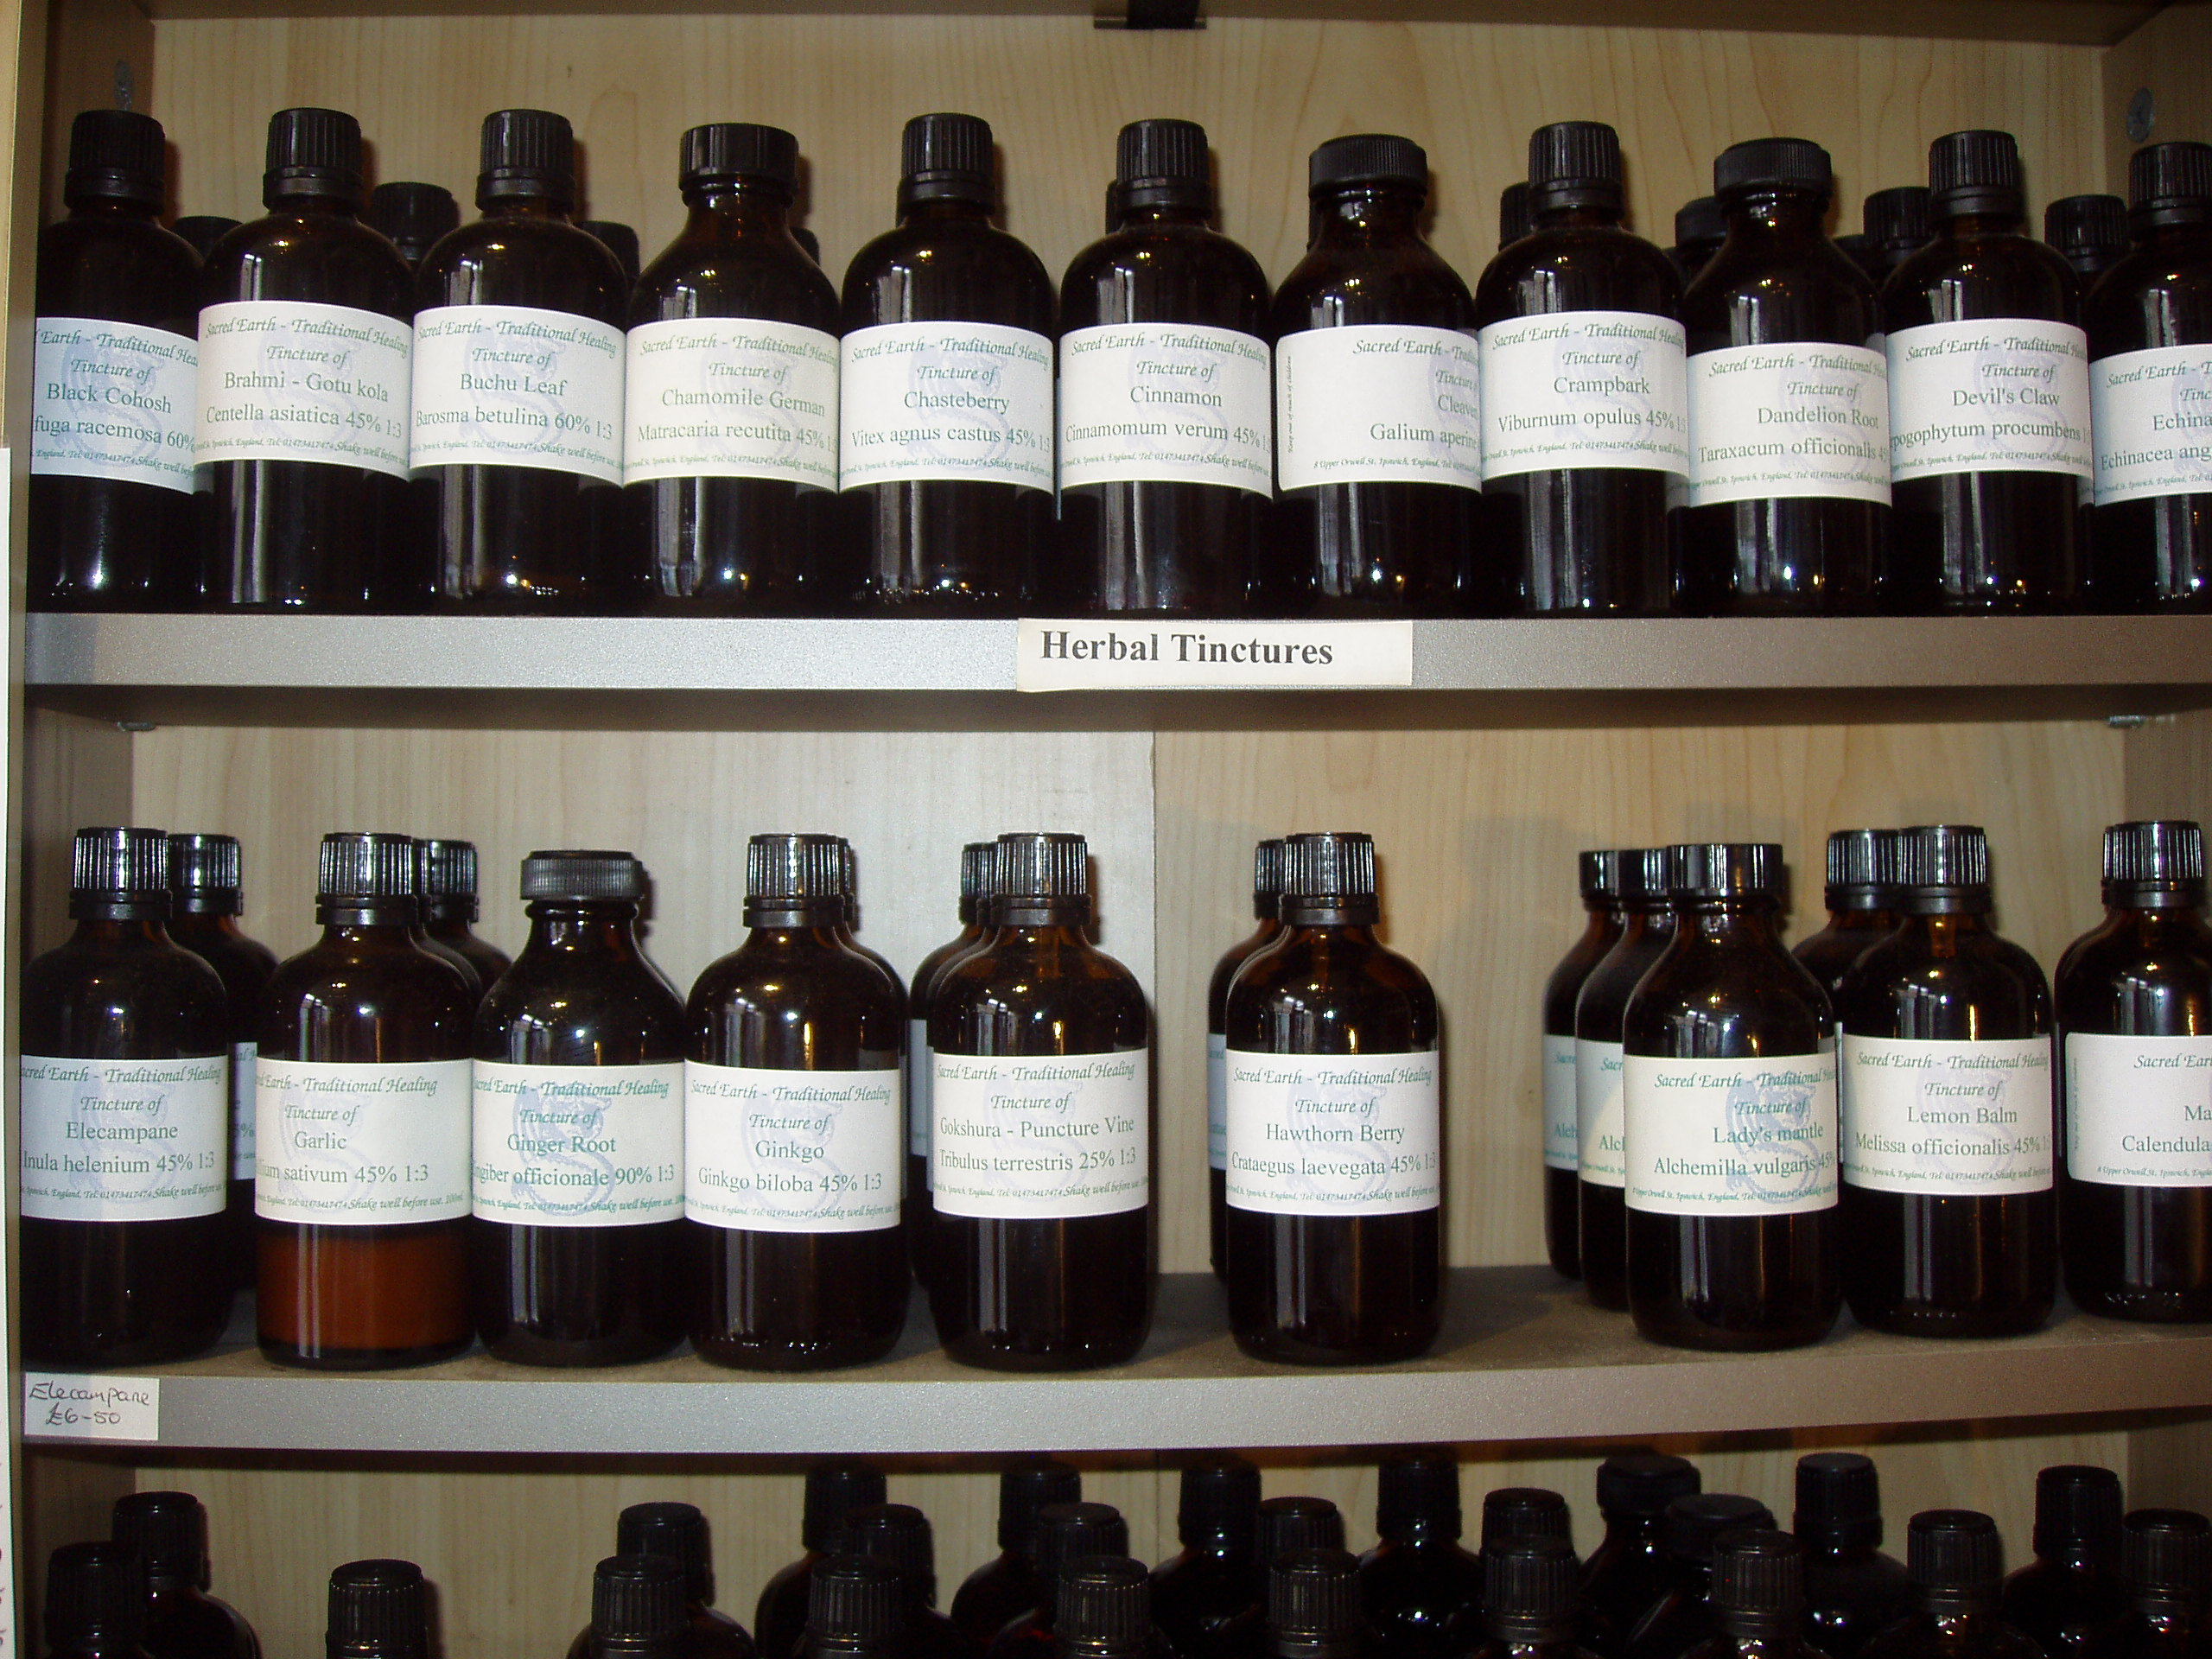 Herbal Tinctures - Myrrh